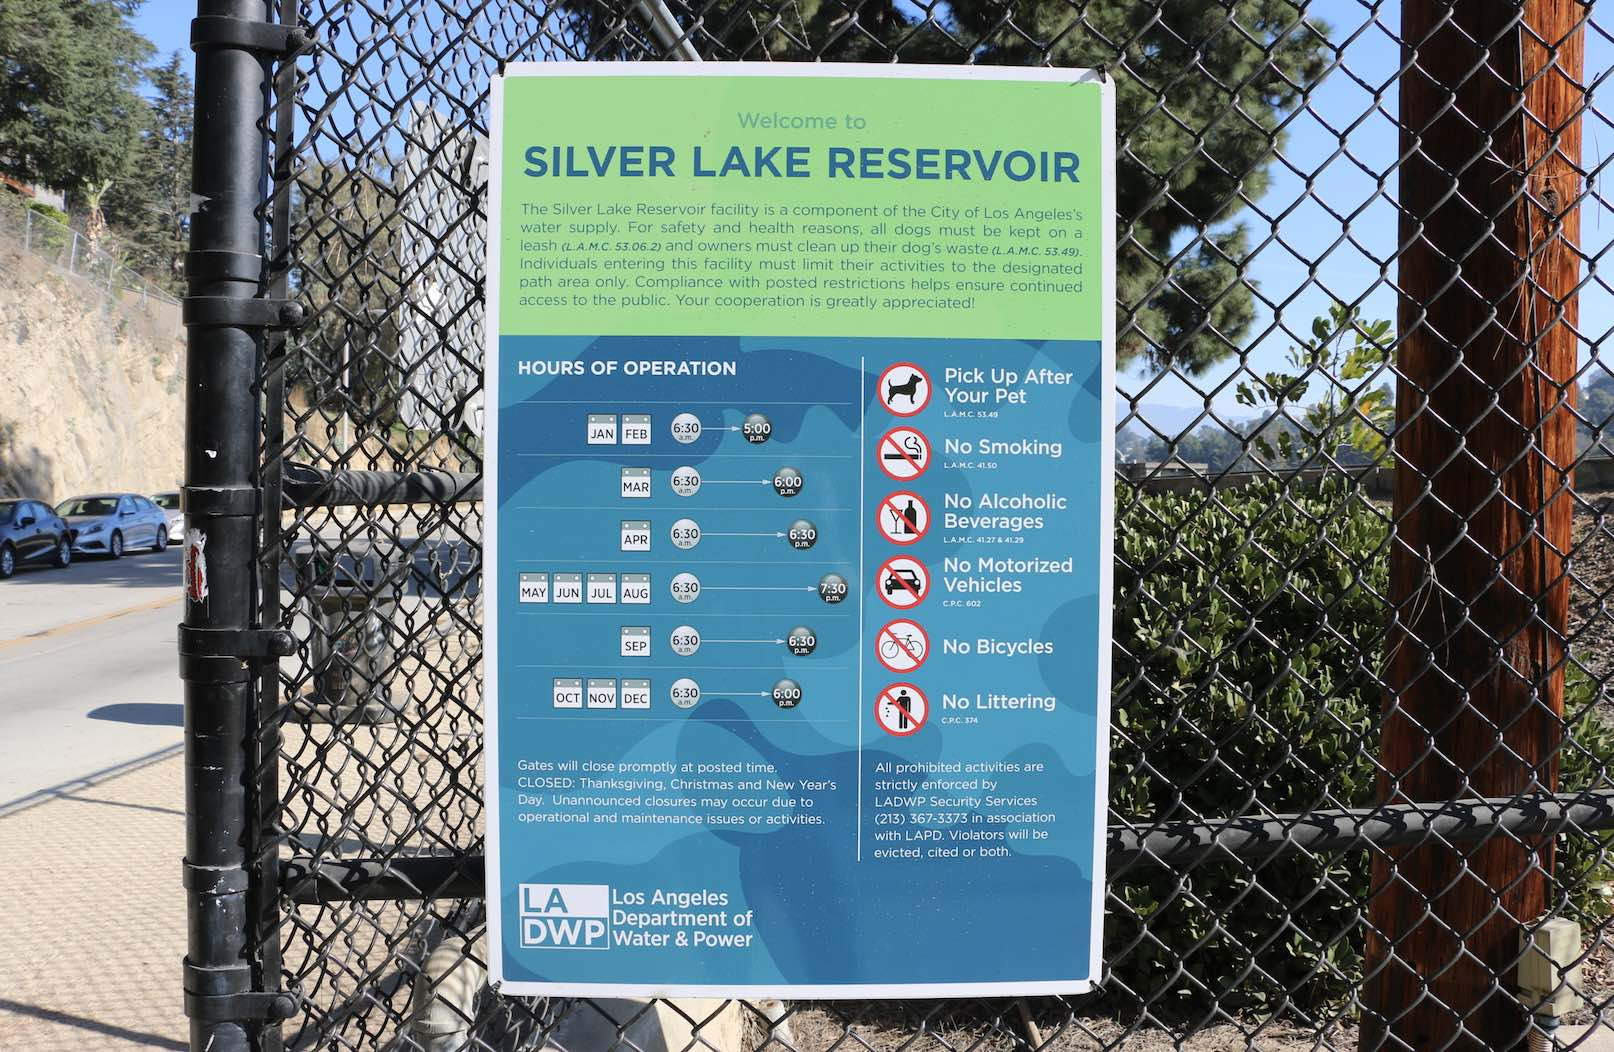 Silver Lake Reservoir hours